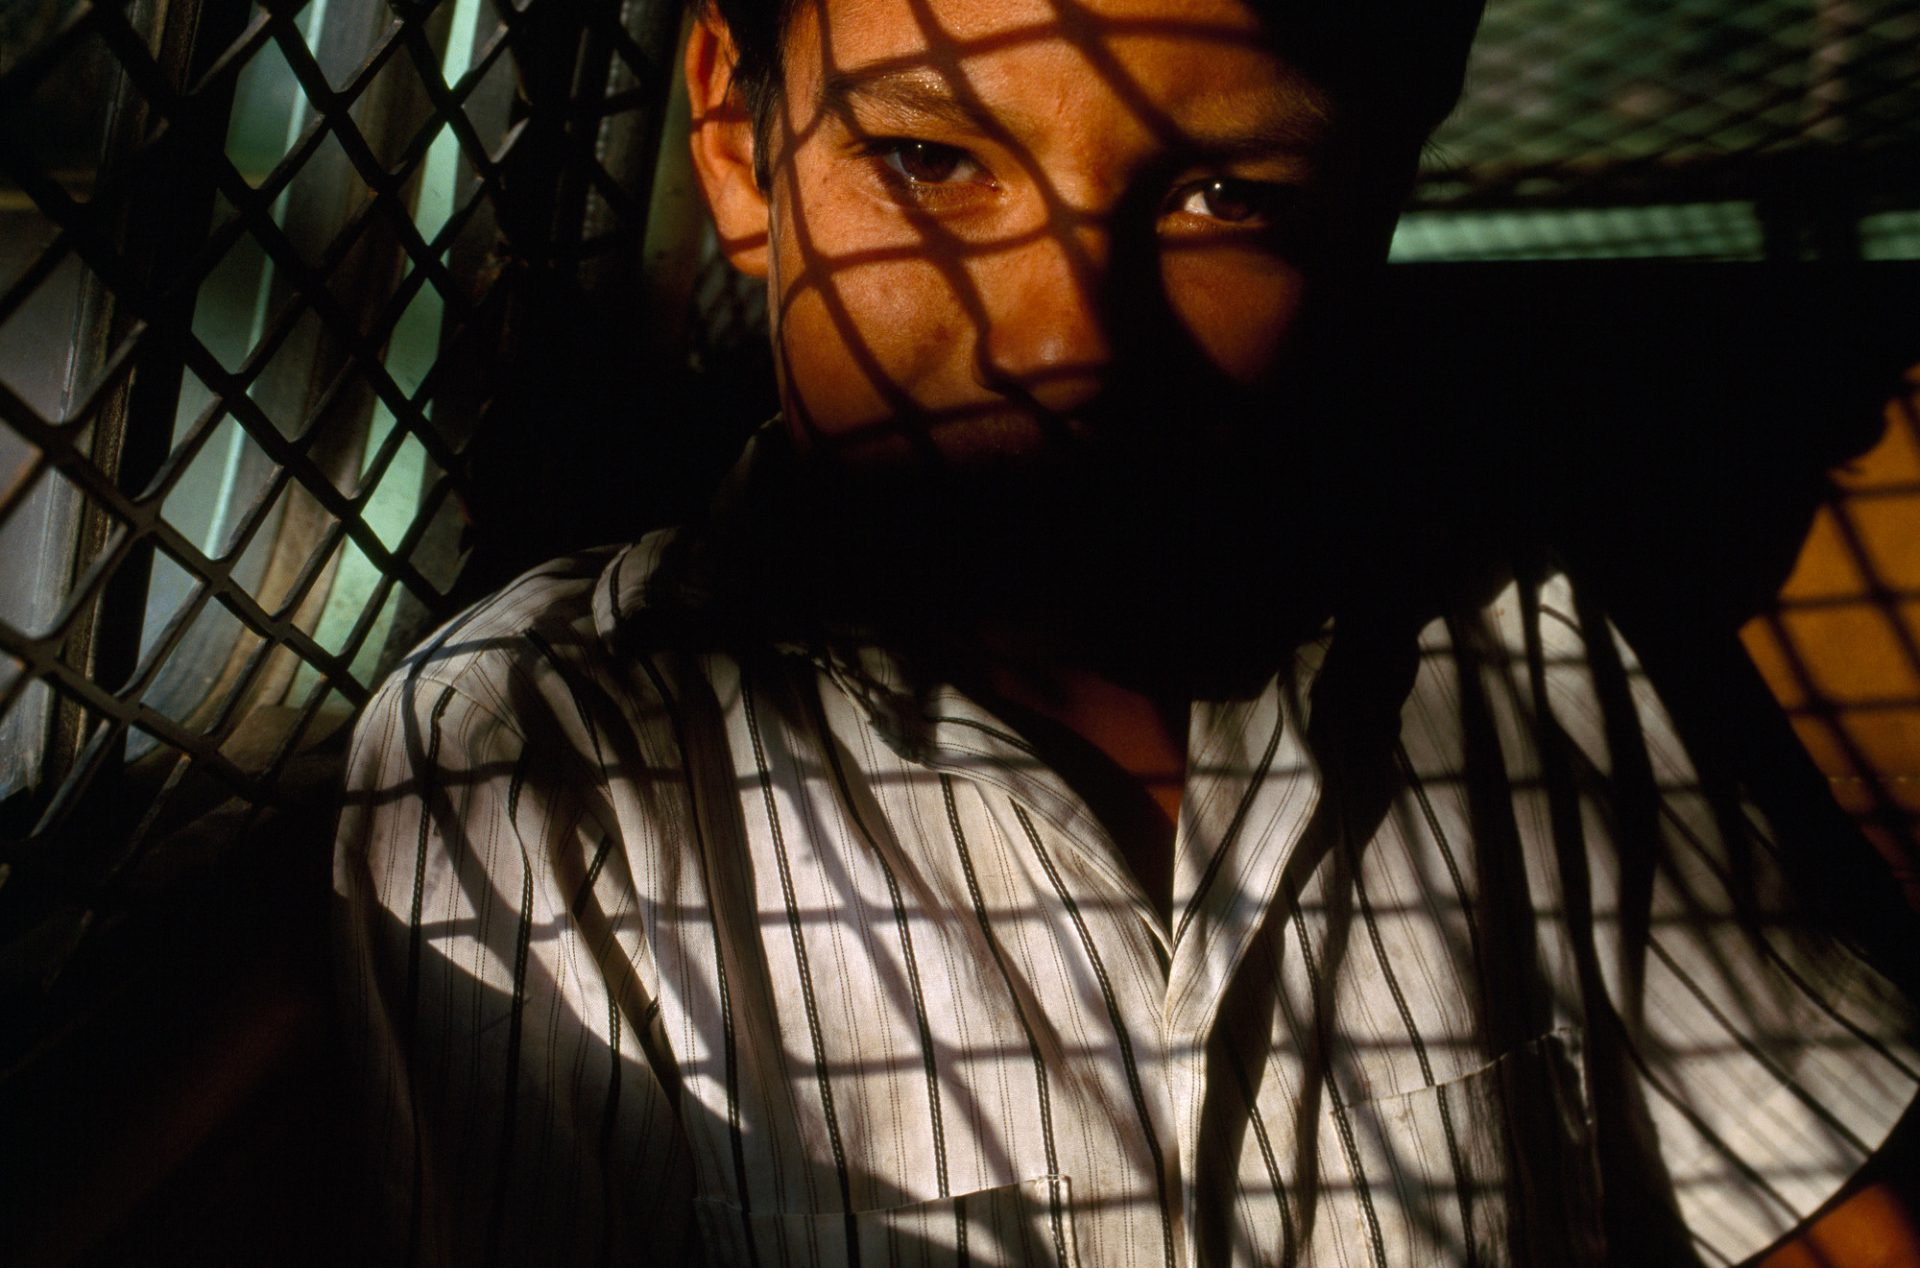 Photo: Criss-crossed by the shadows of containment bars in the back of a U.S. Border Patrol vehicle, a ten-year-old boy is driven back to his hometown of Matamoros after being caught sneaking into Brownsville, Texas.